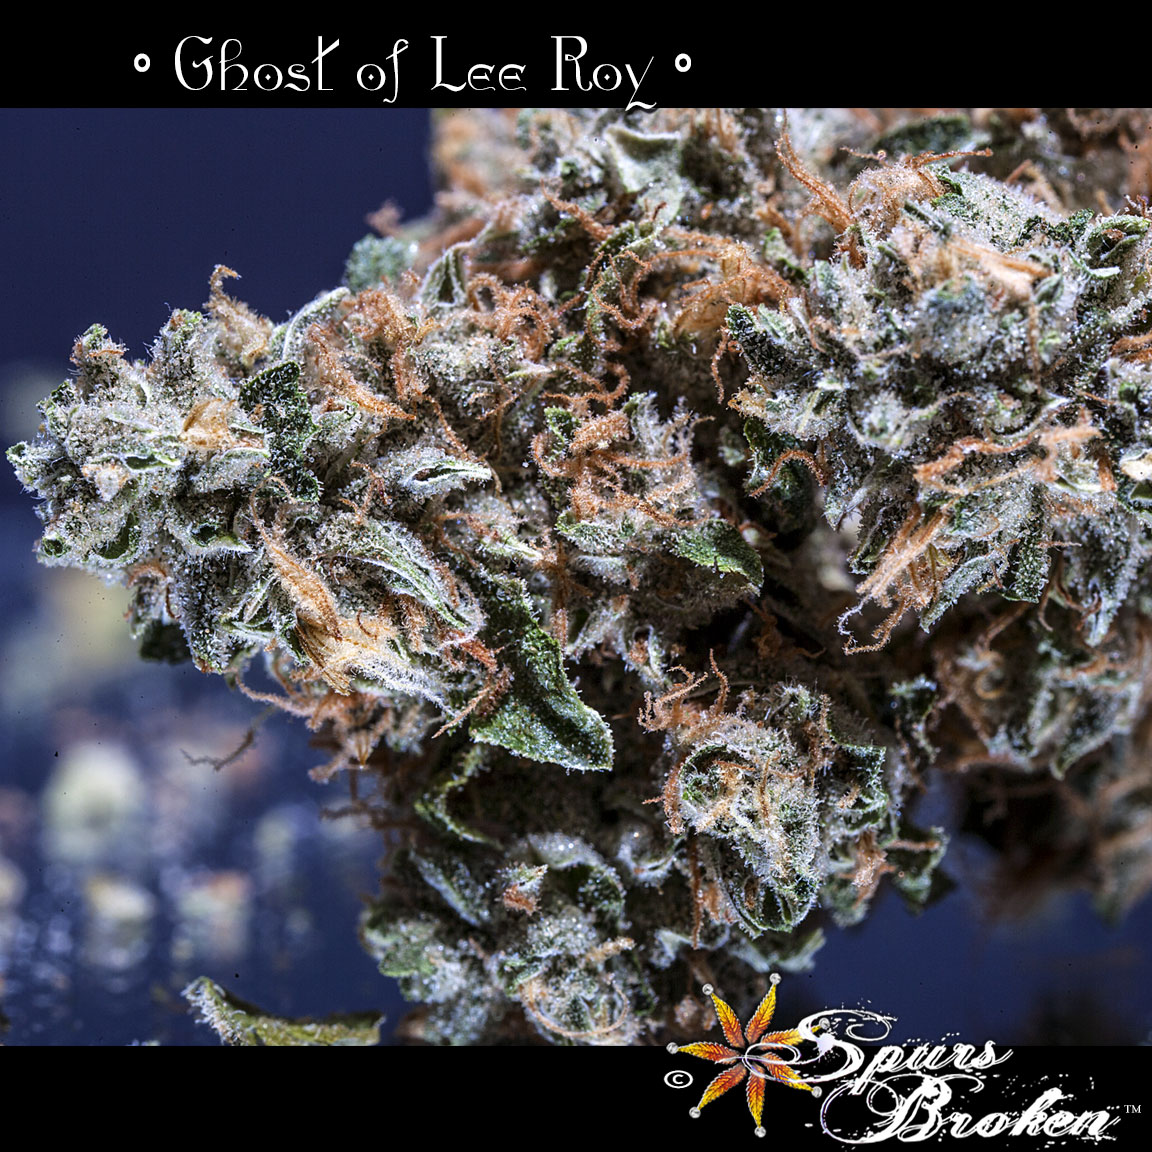 Ghost of LeeRoy -Cannabis Macro Photography by Spurs Broken (Robert R. Sanders)